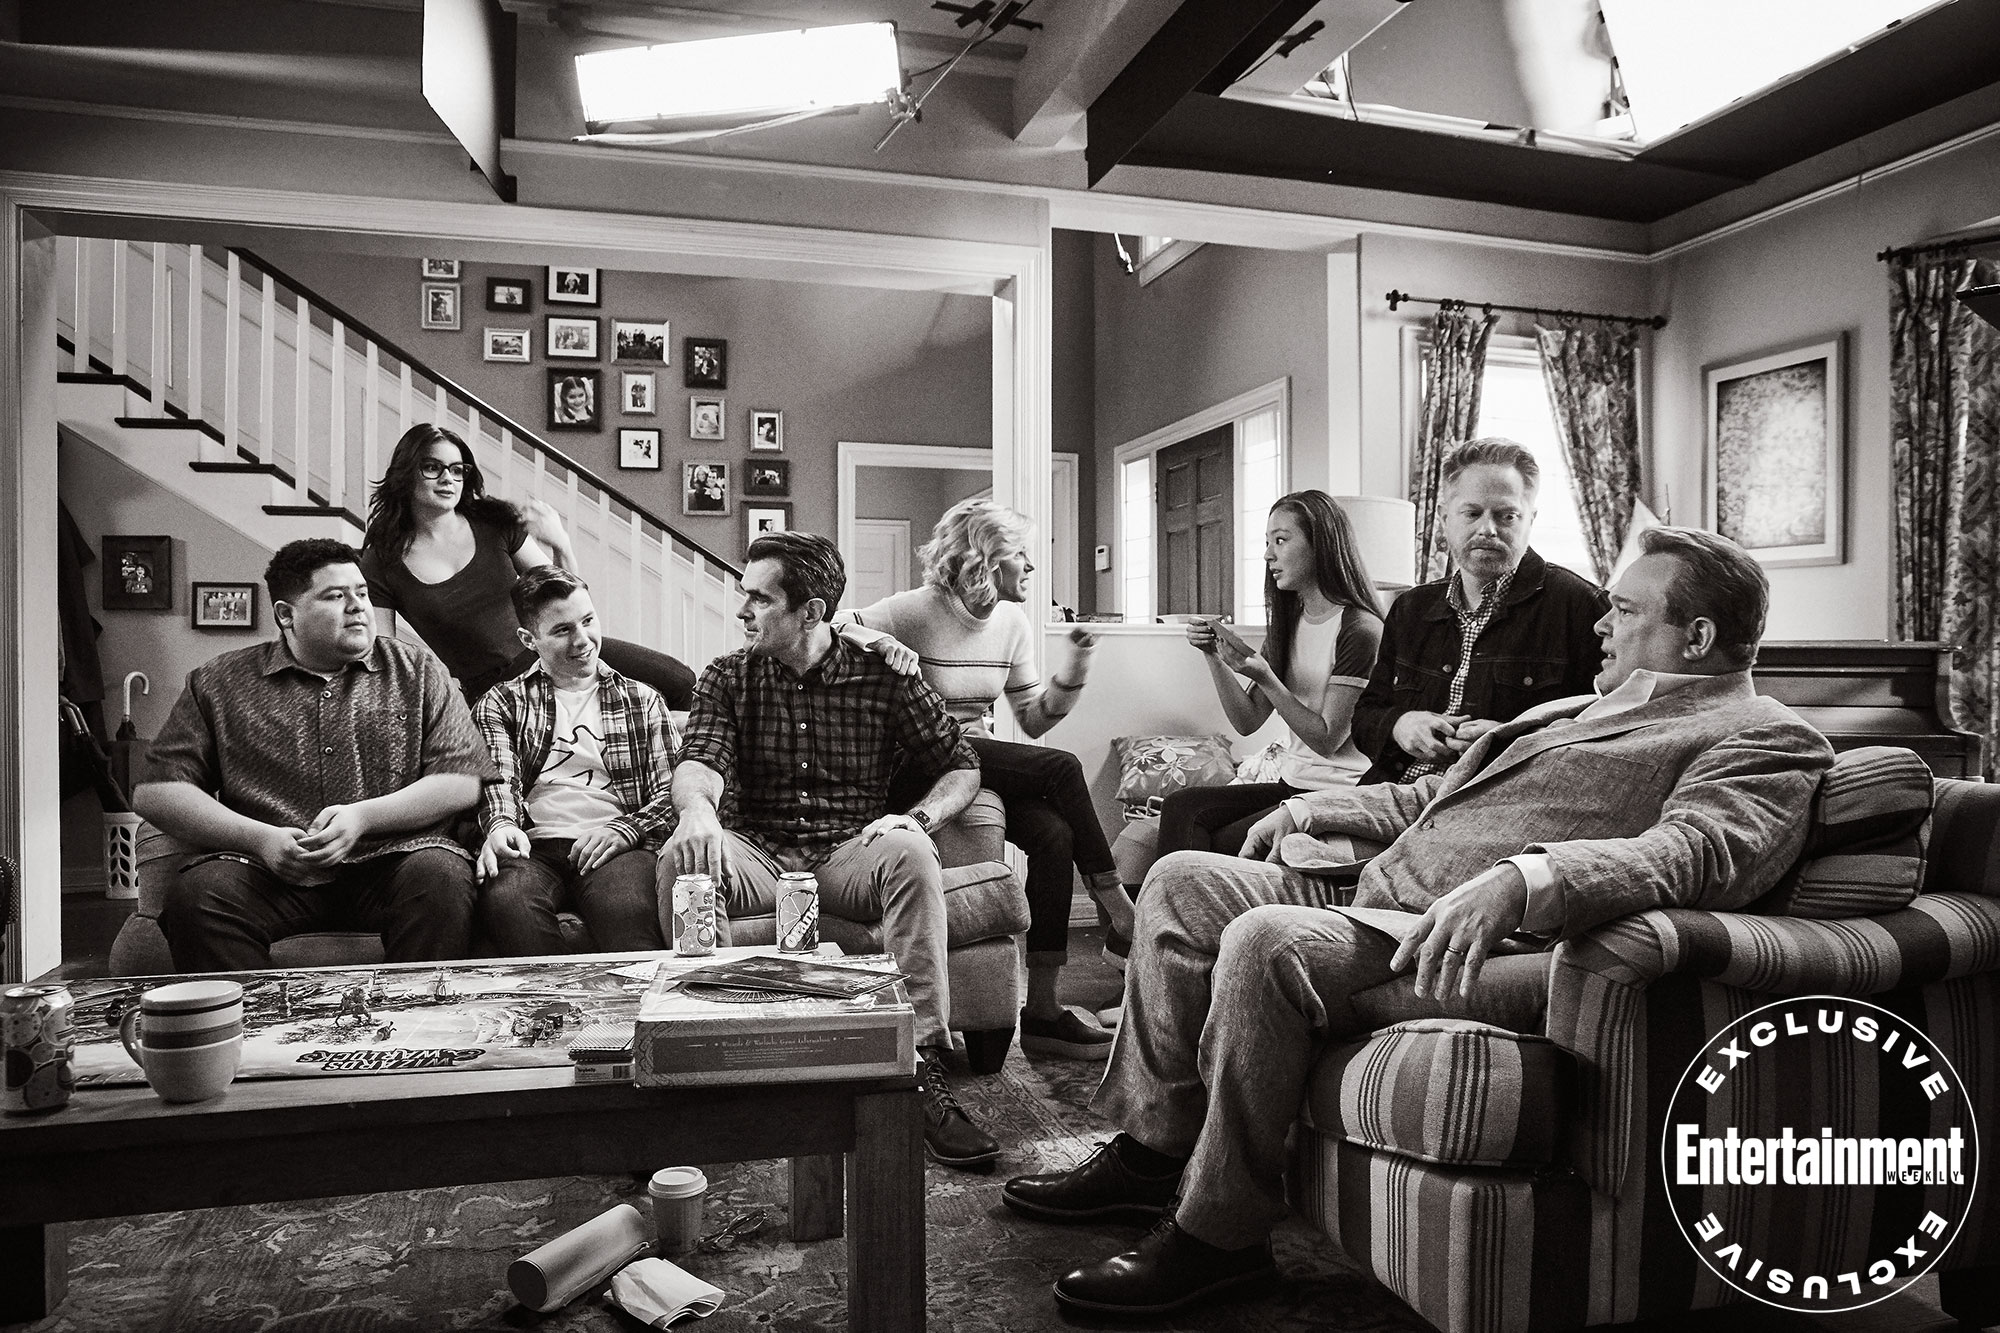 Rico Rodriguez (Manny), Ariel Winter (Alex), Nolan Gould (Luke), Ty Burrell (Phil), Julie Bowen (Claire), Lily (Aubrey Anderson-Emmons), Jesse Tyler Ferguson (Mitchell), and Eric Stonestreet (Cameron) catch up between takes